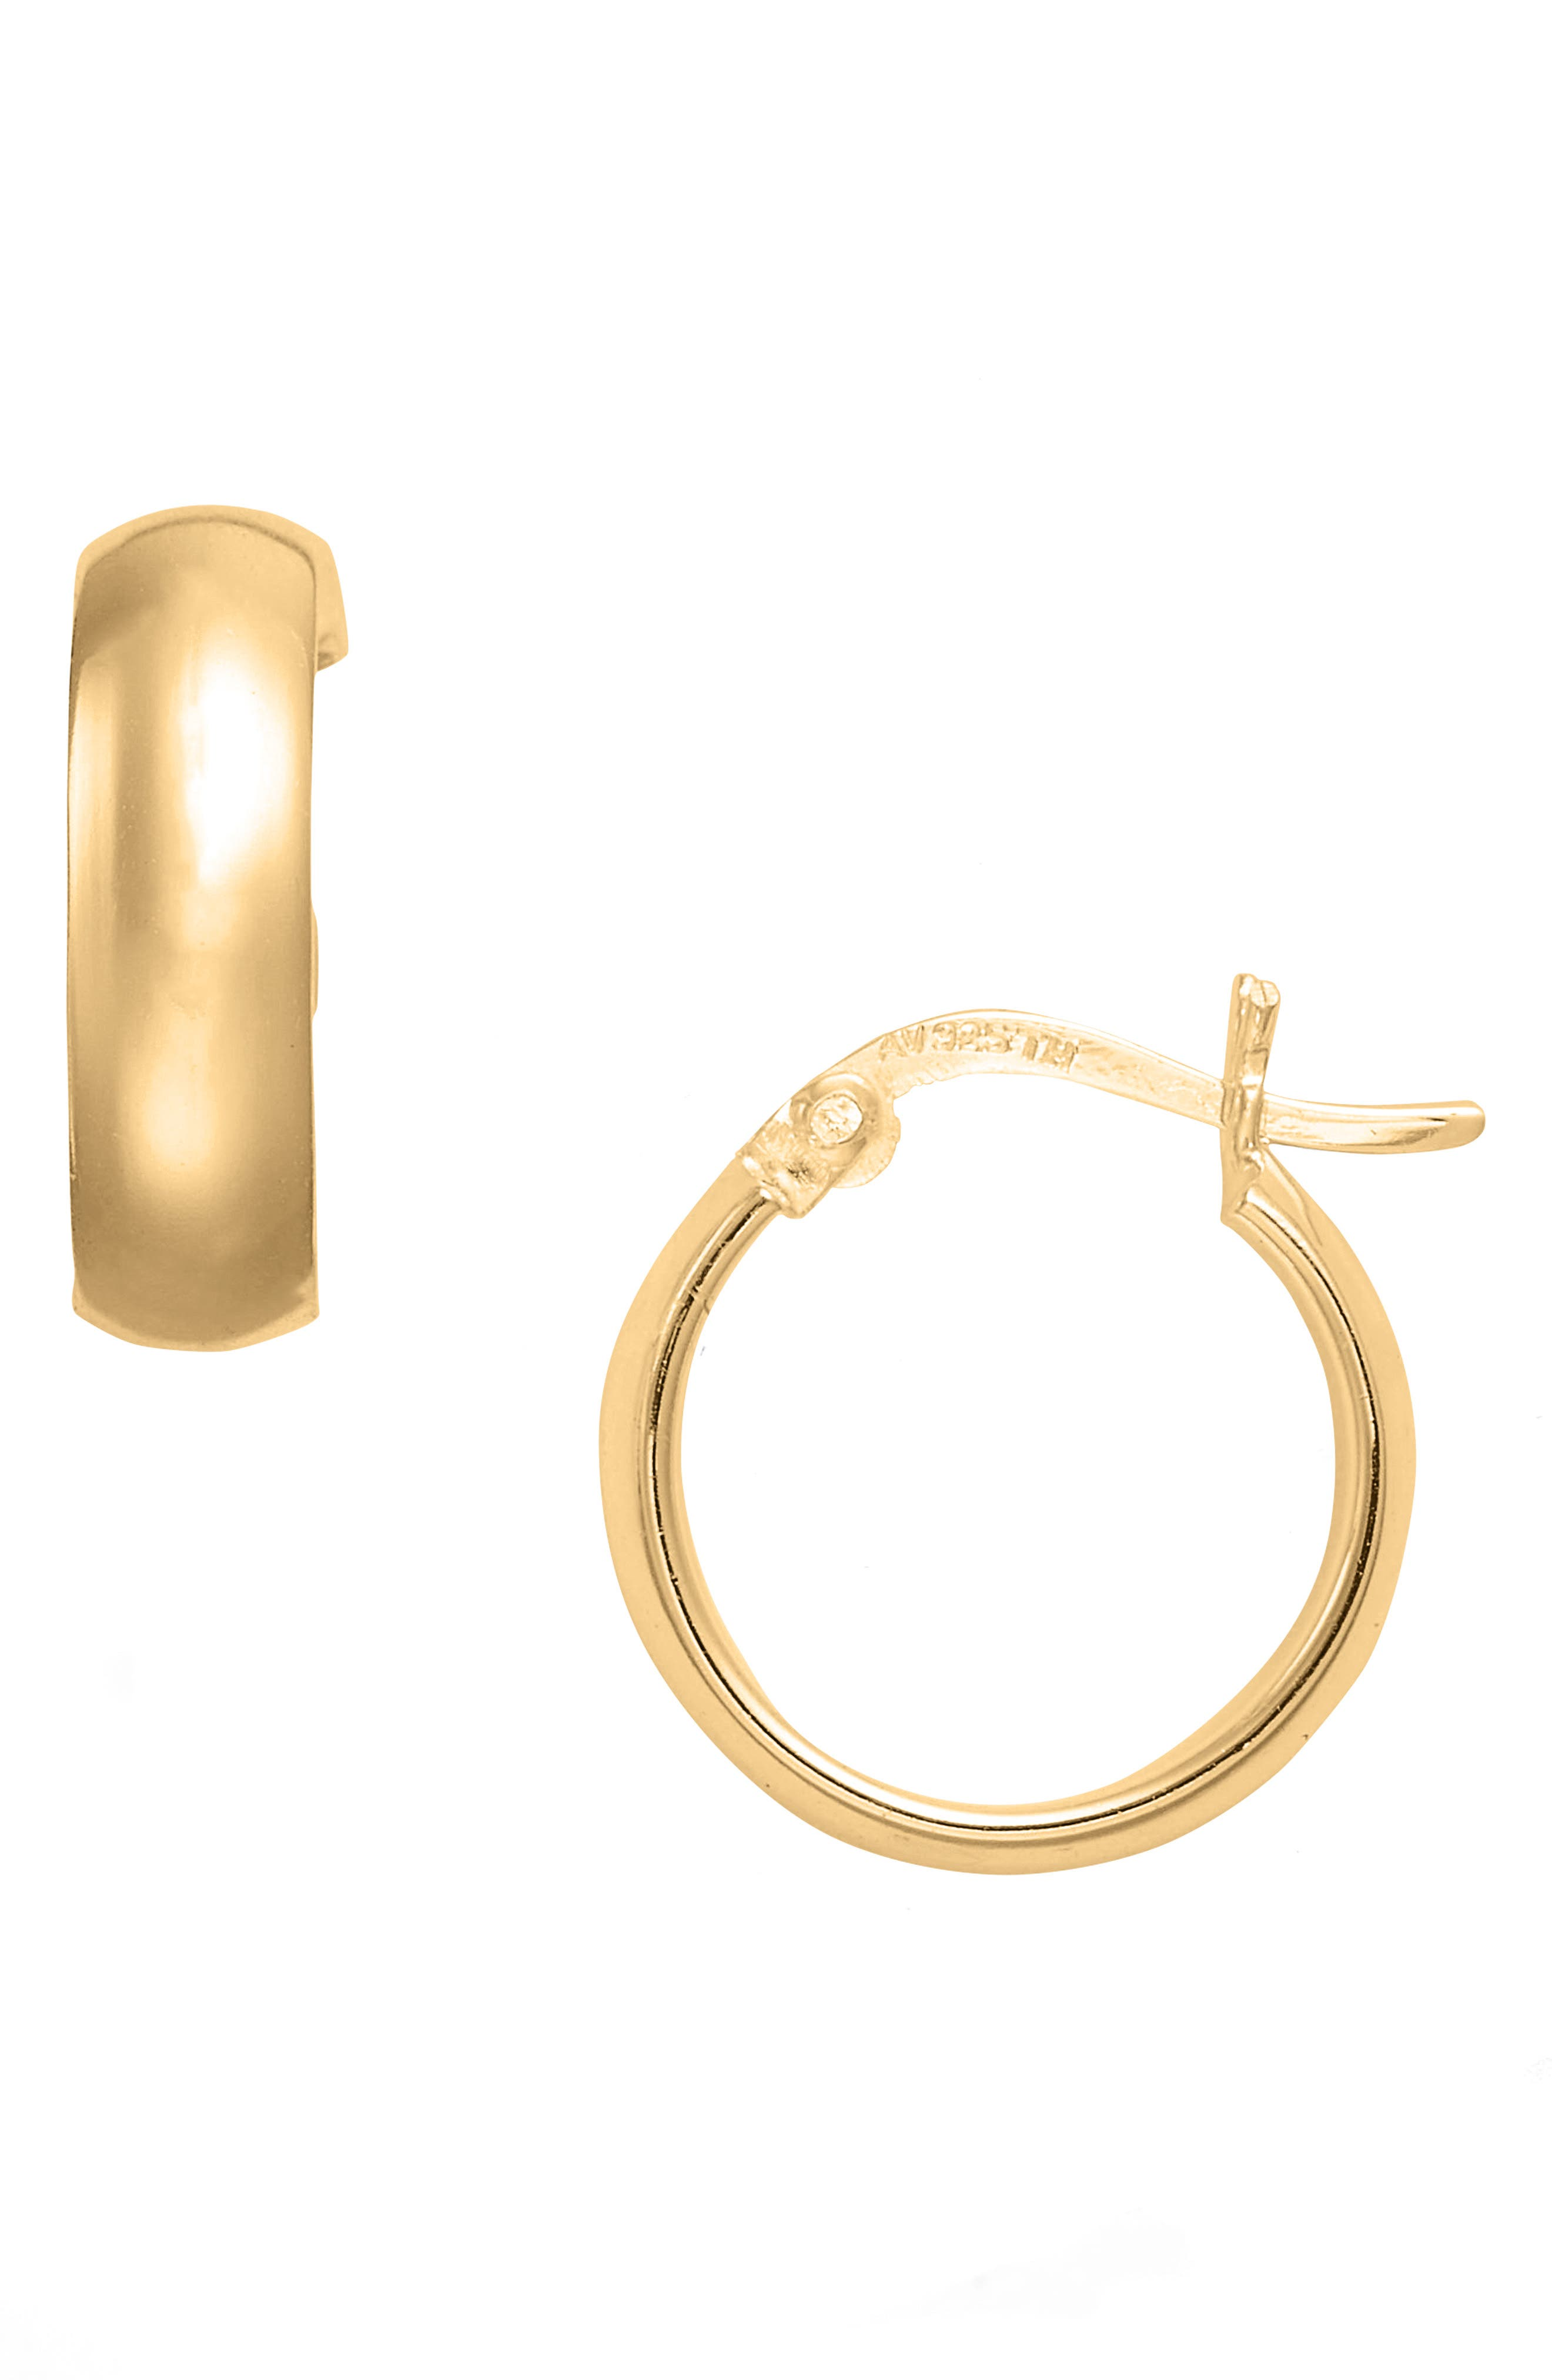 Small Curved Hoop Earrings,                         Main,                         color, Gold